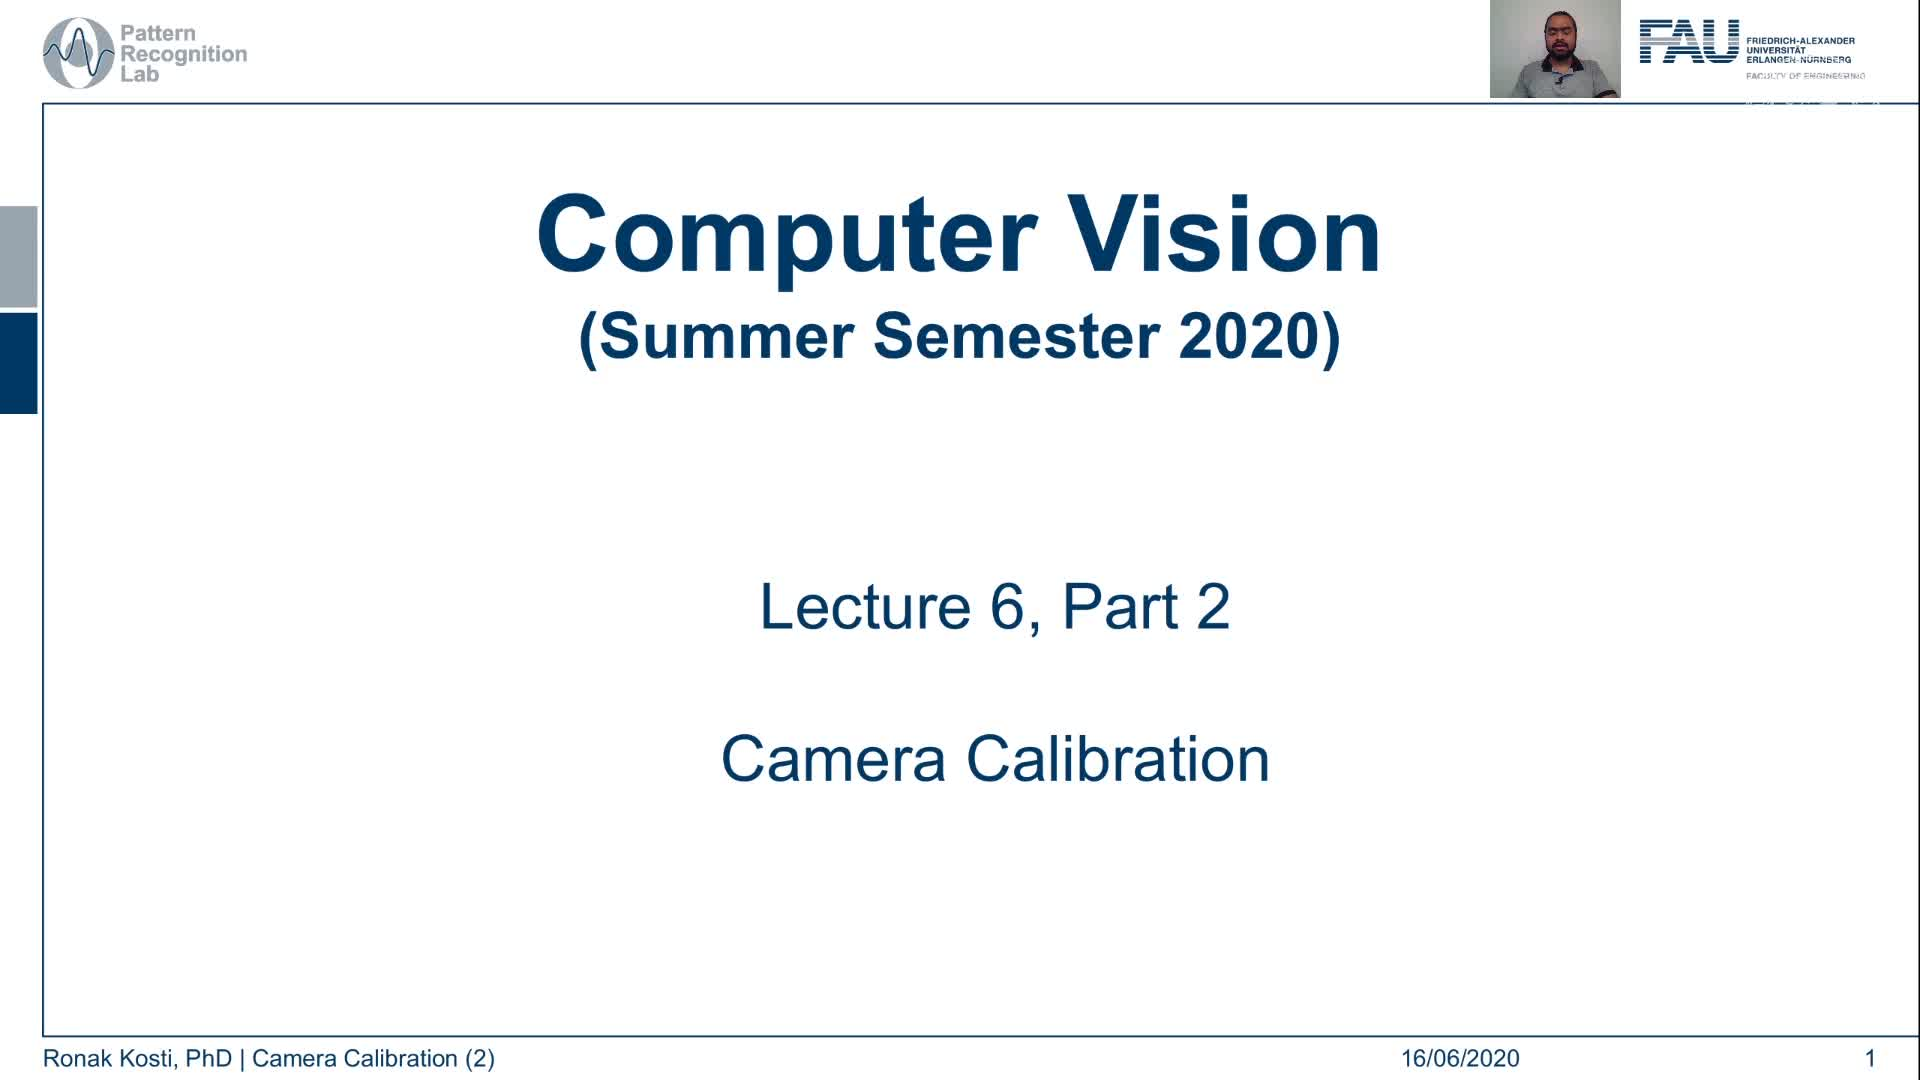 Camera Calibration (Lecture 6, Part 2) preview image